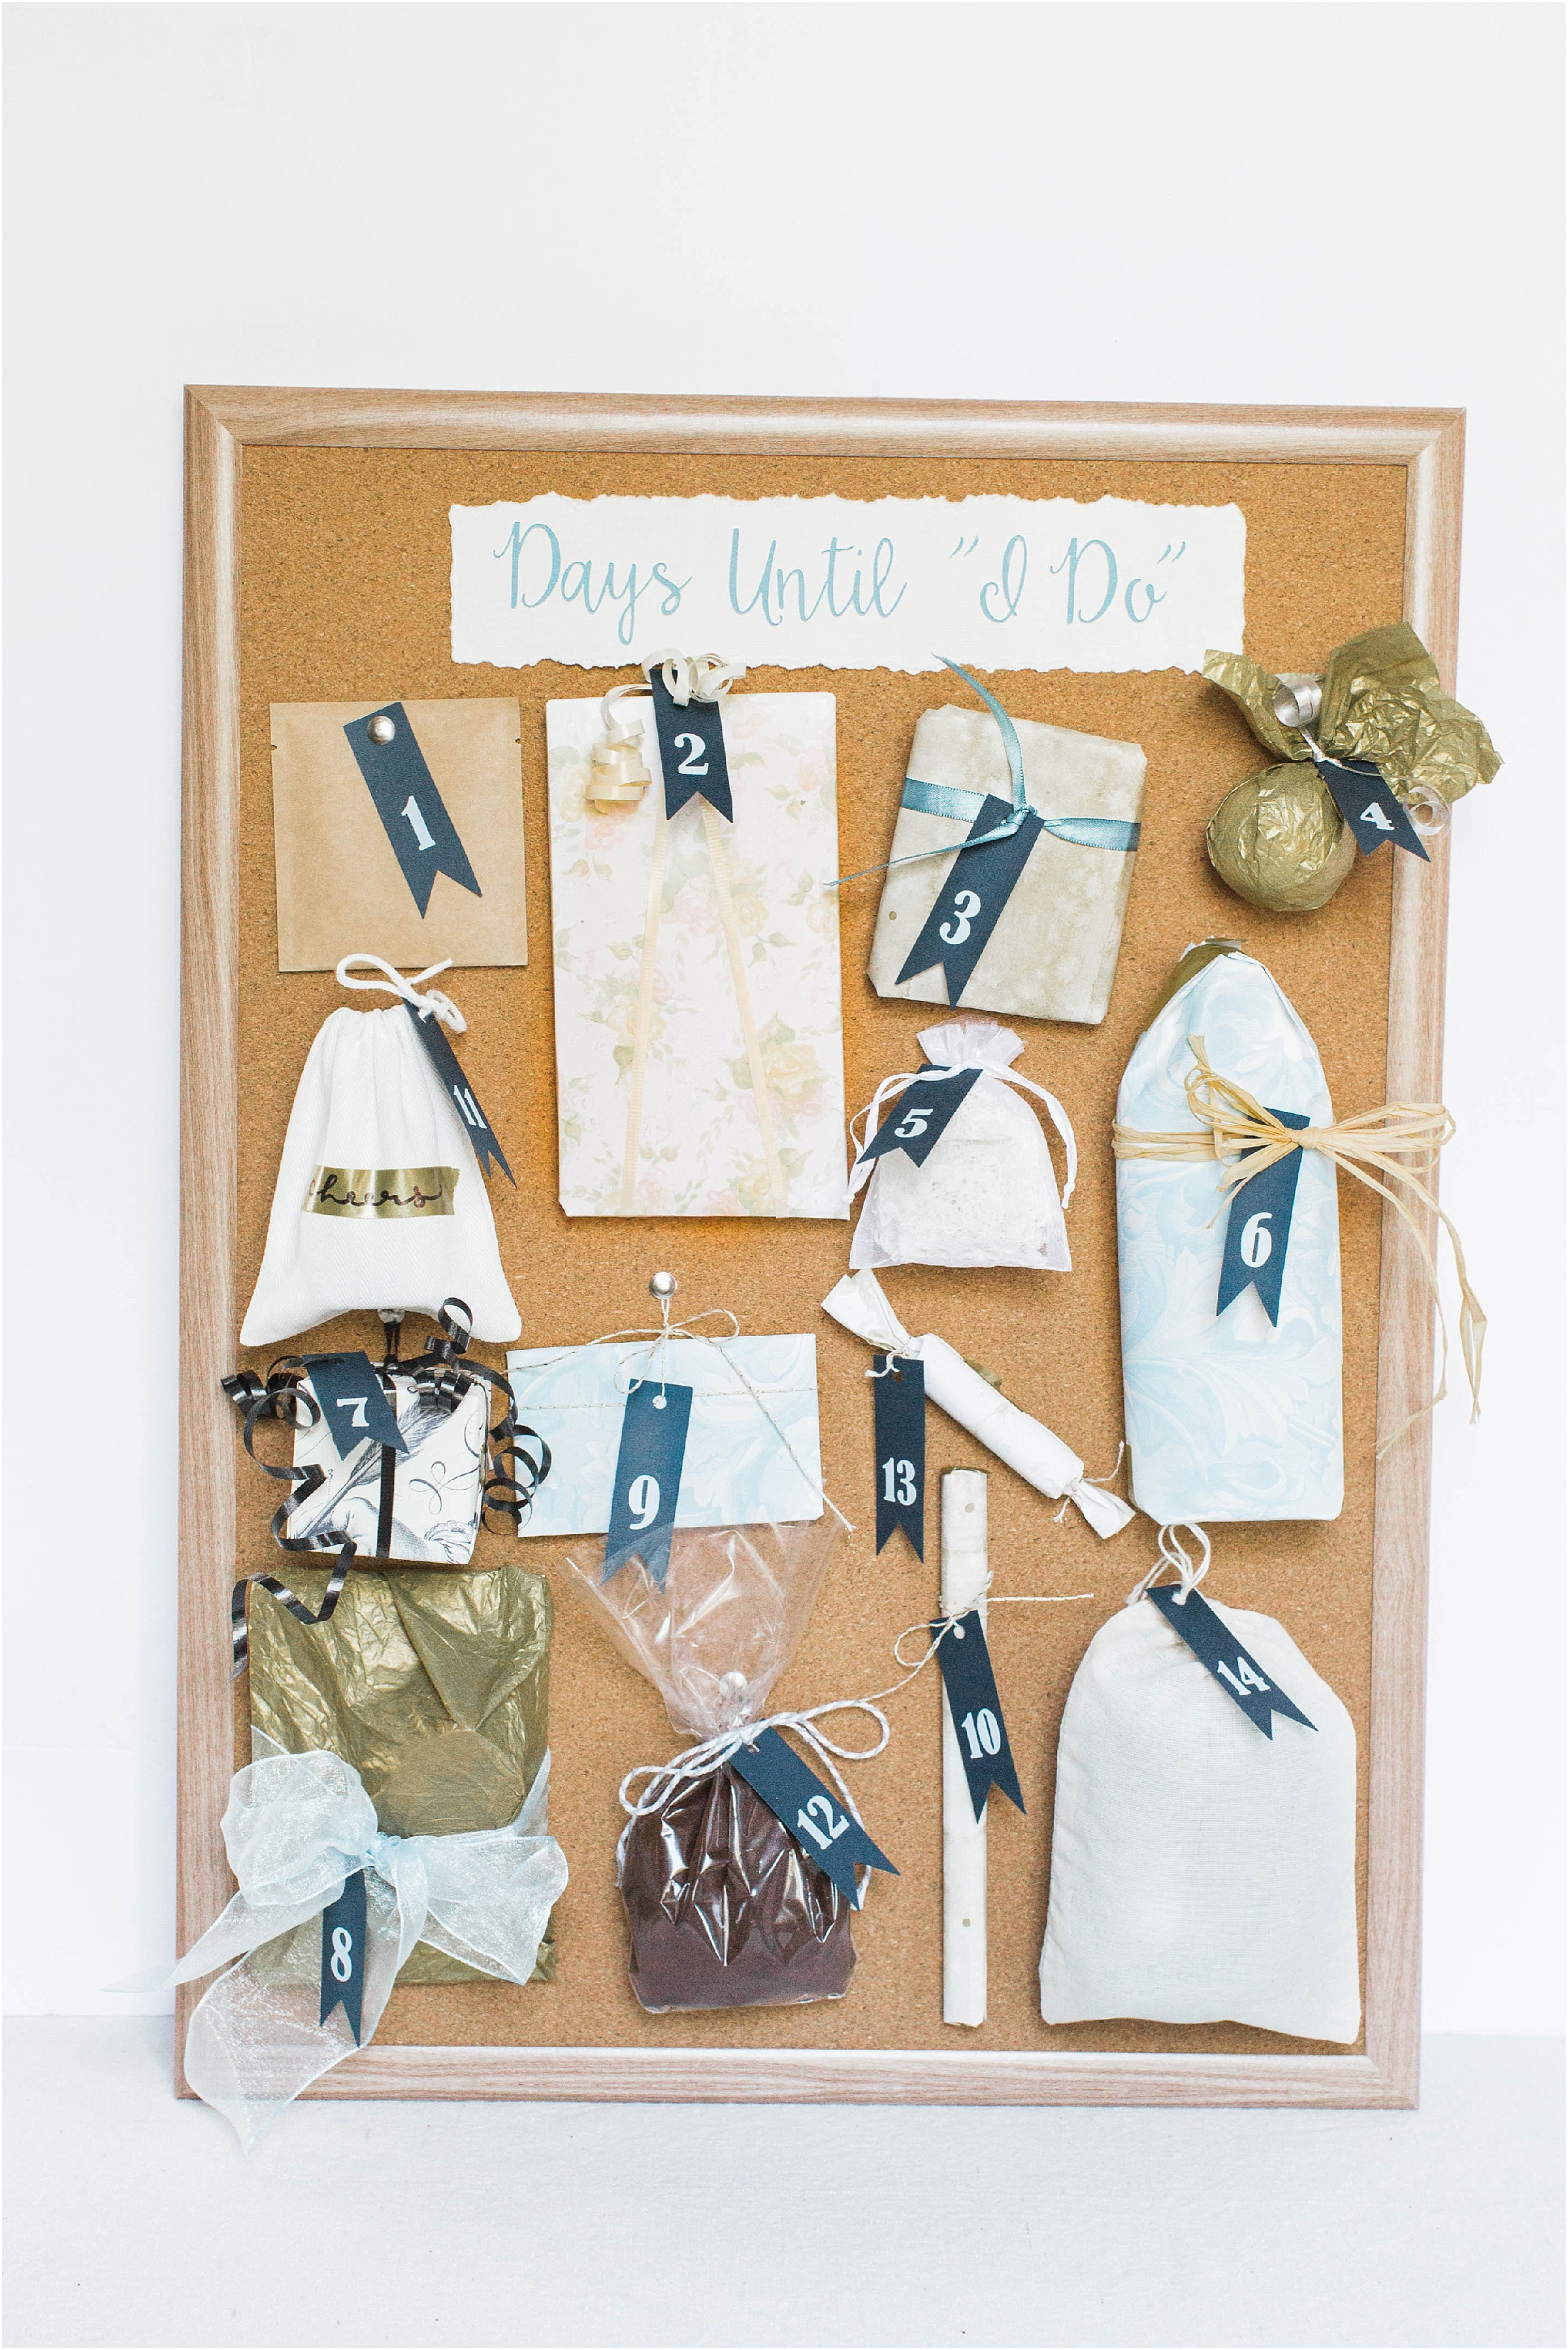 Best ideas about DIY Wedding Gifts . Save or Pin How to DIY a Wedding Advent Calendar Now.